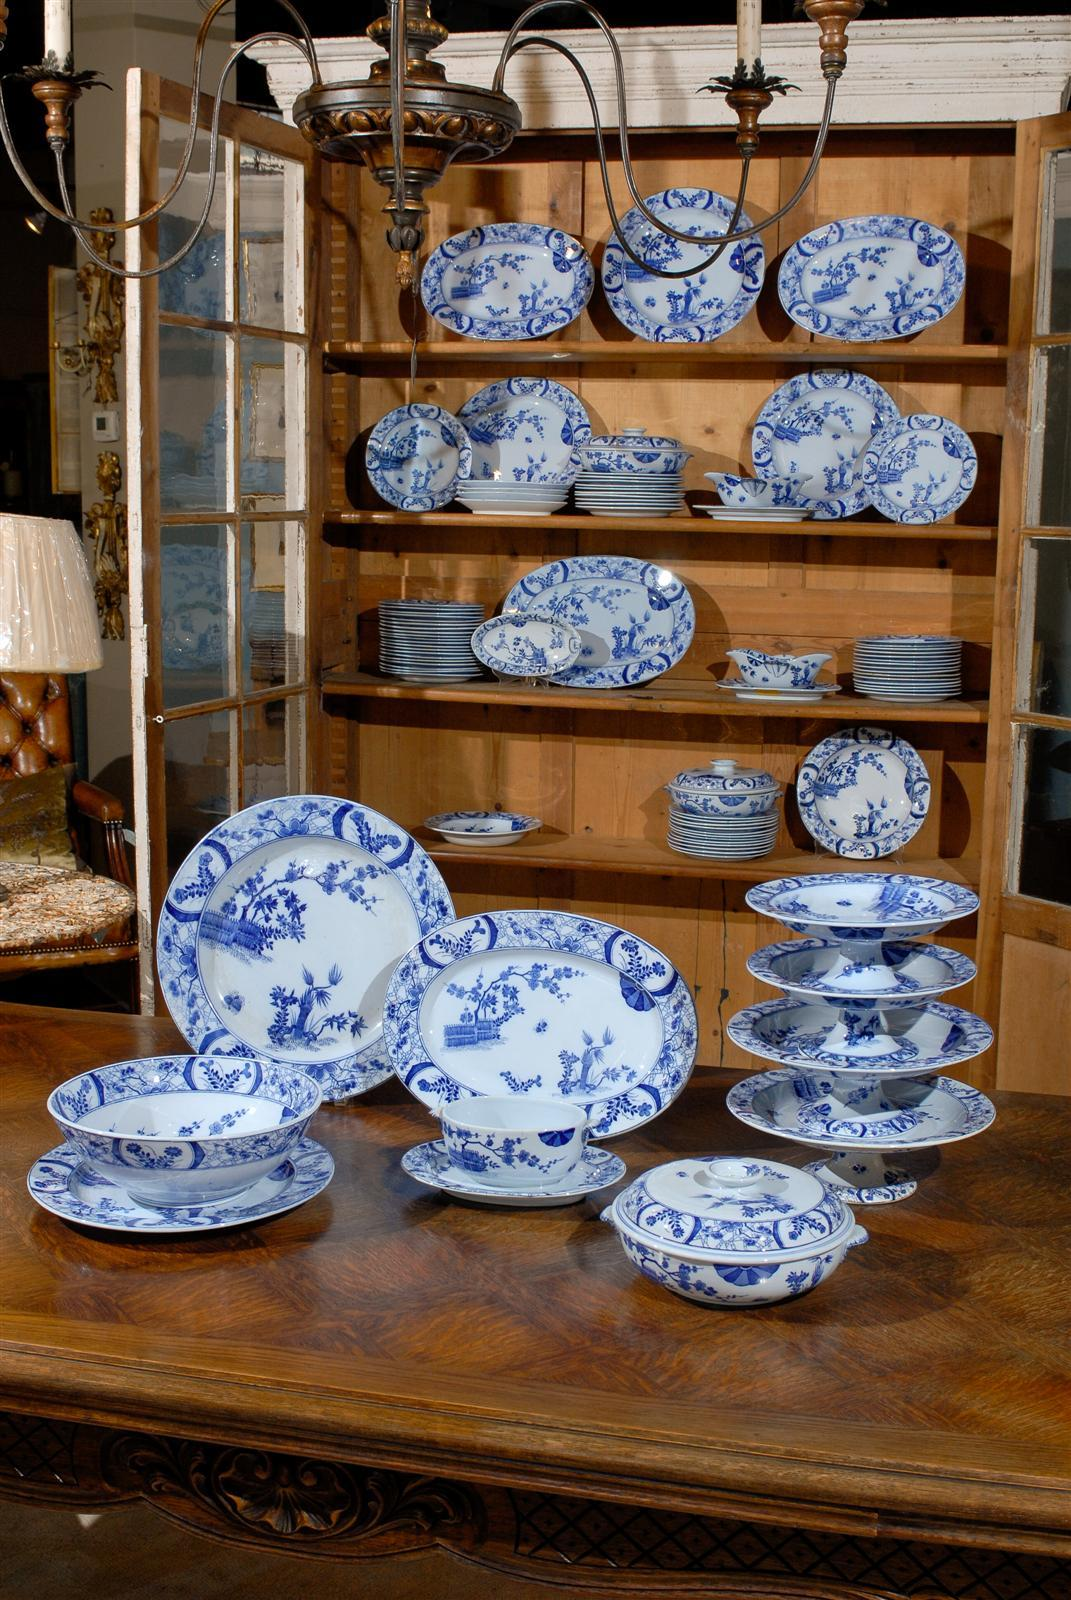 French 85-Piece Blue and White Japonisme Porcelain Dinnerware Designed by Claude Monet For Sale & 85-Piece Blue and White Japonisme Porcelain Dinnerware Designed by ...